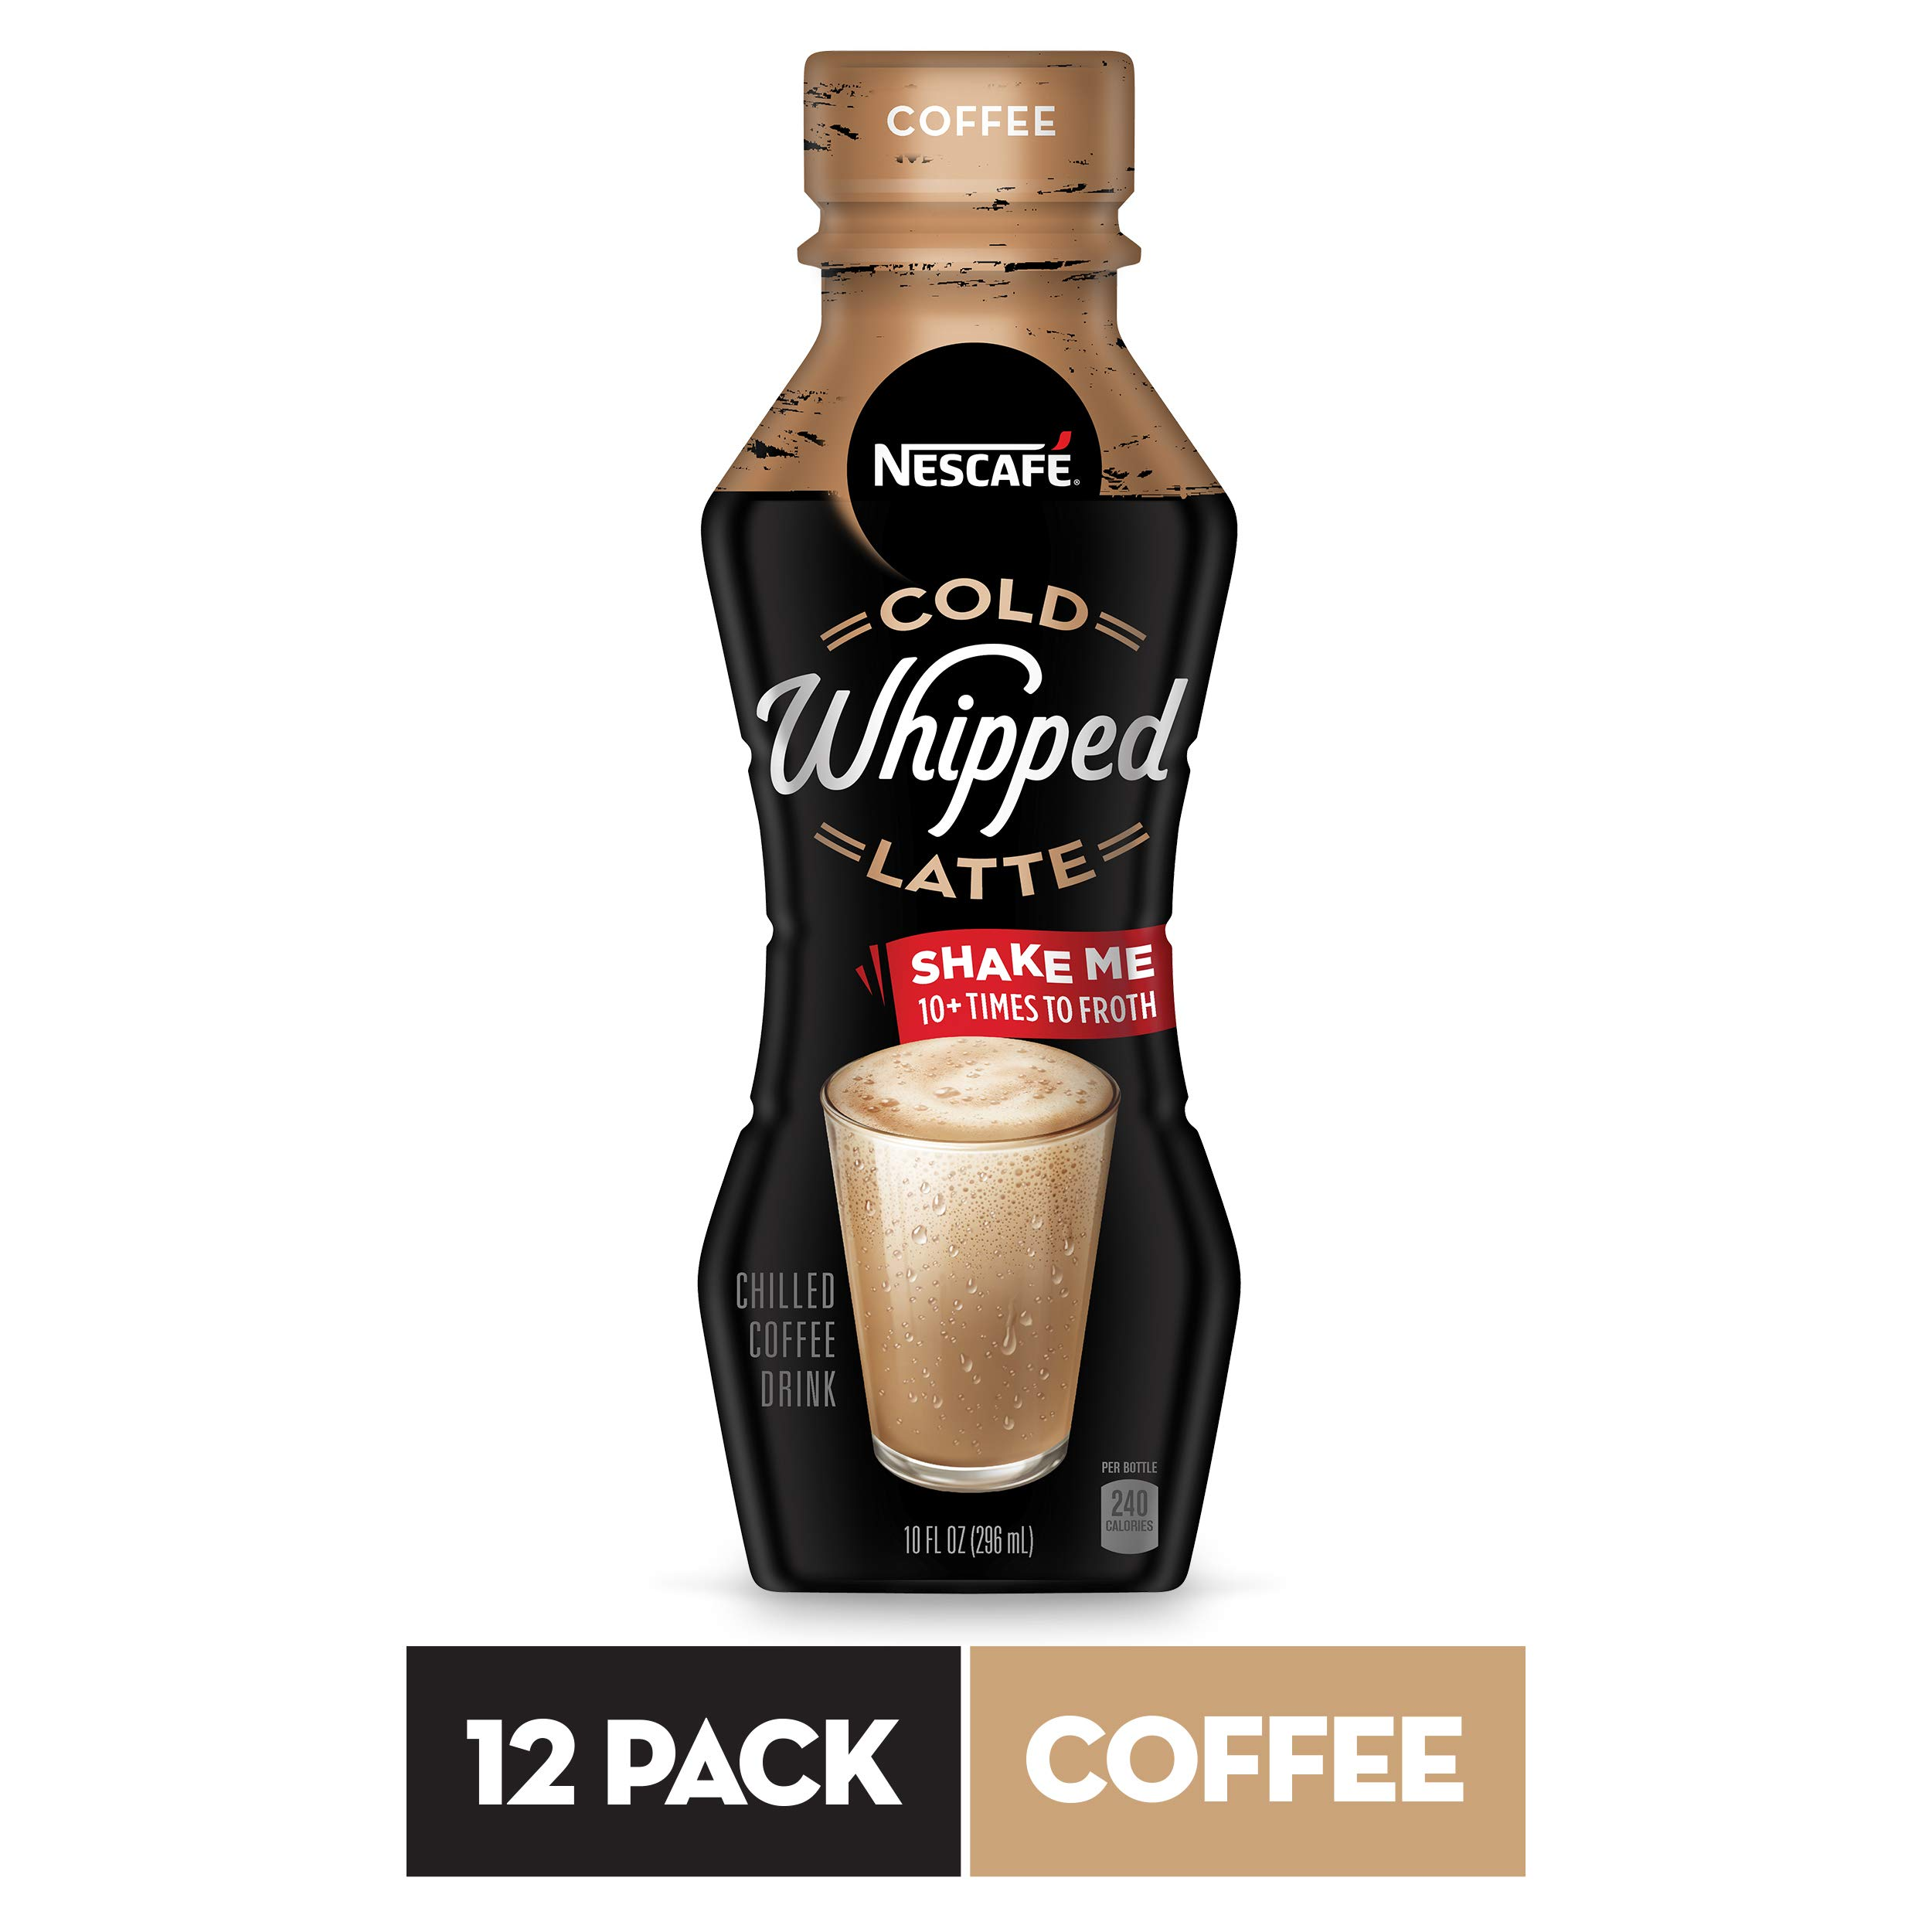 NESCAFÉ Cold Whipped Latte, Ready to Drink Chilled Coffee Drink, Coffee, 10 FL OZ, 12 Bottles | Premium Roasted Coffee Drink with Latte Froth by Nescafe